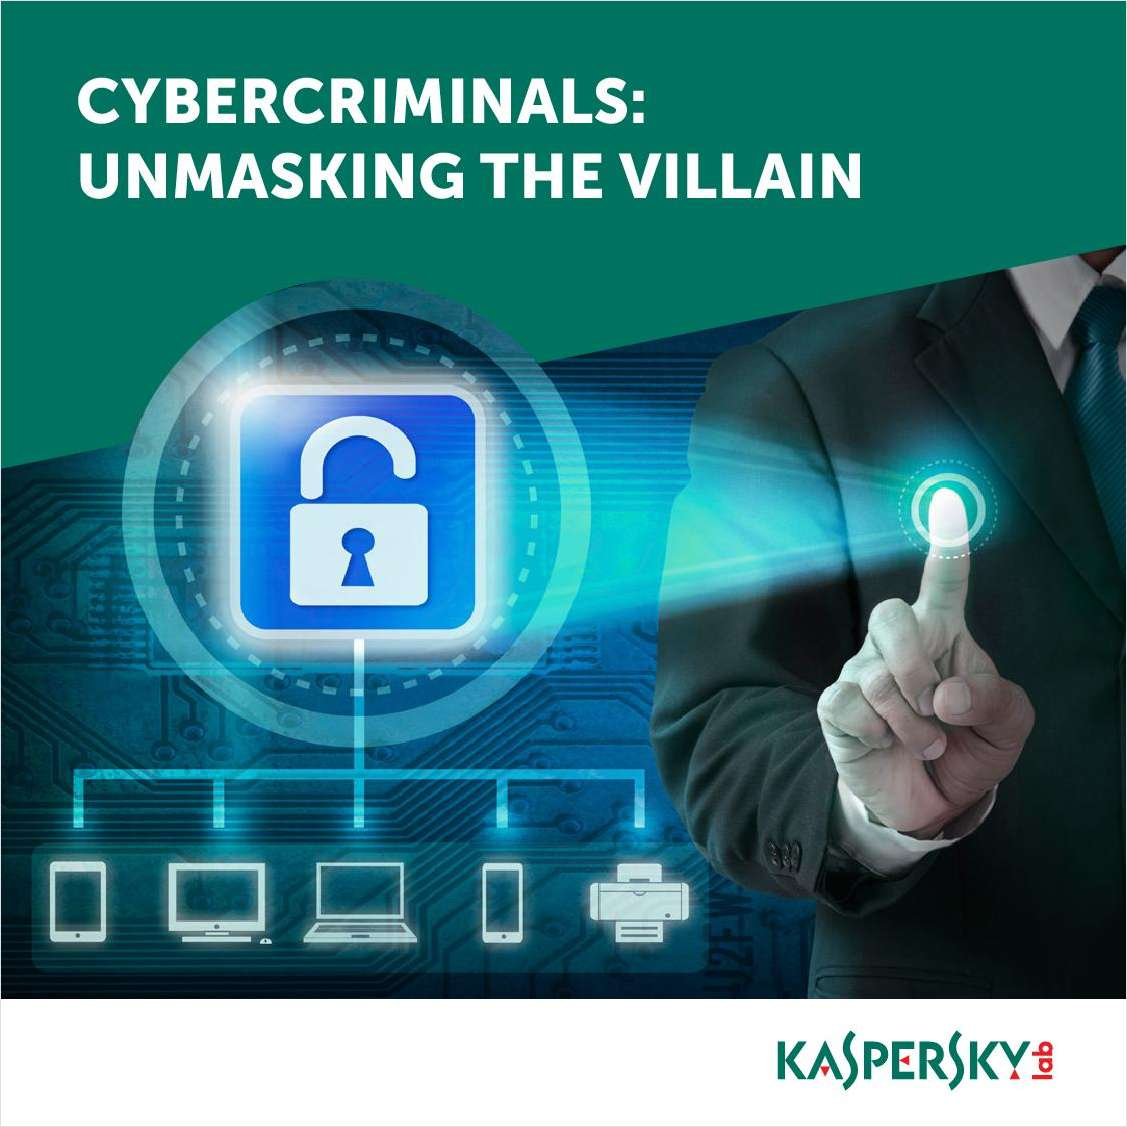 Lifting the Veil of Secrecy on Cybercriminals